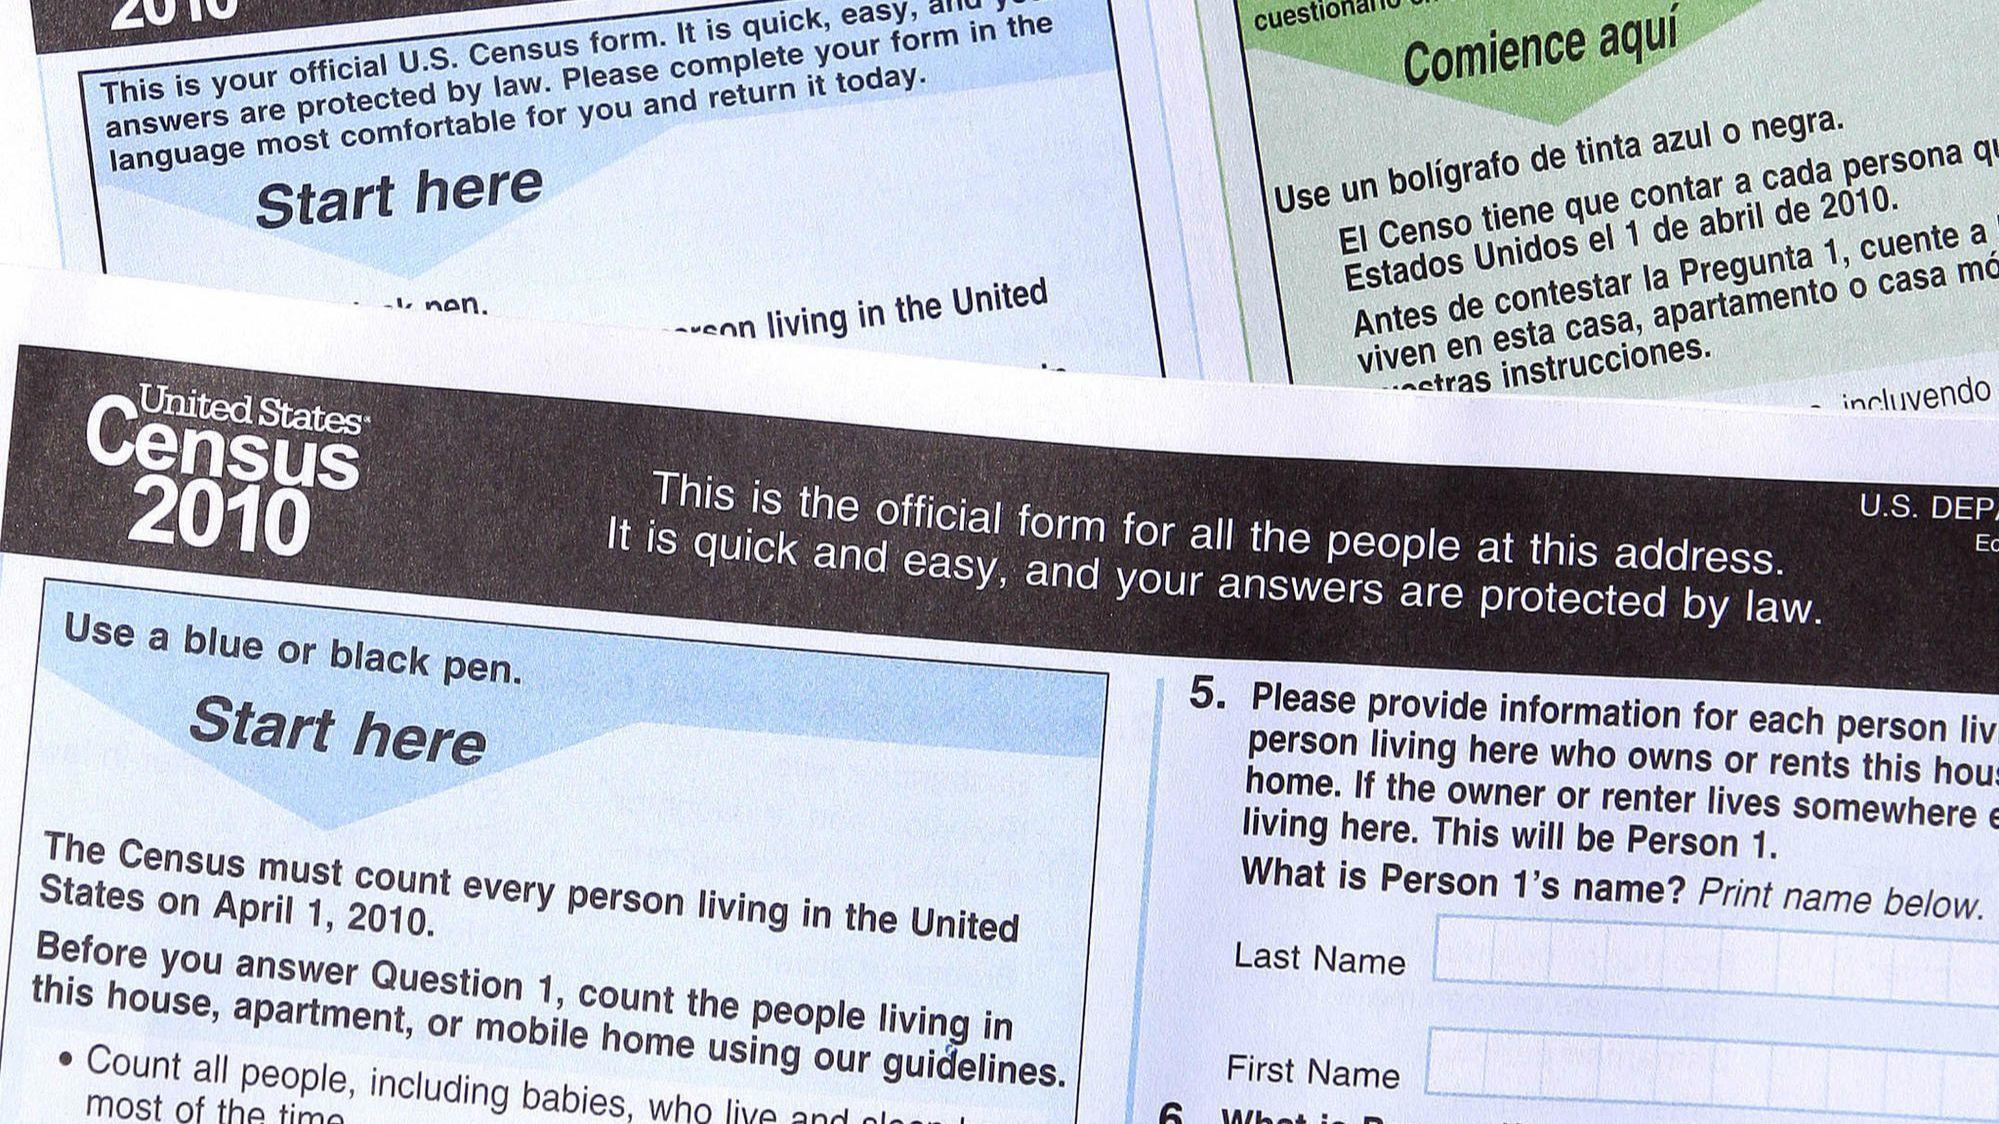 Census Question About Citizenship Status Angers Maryland